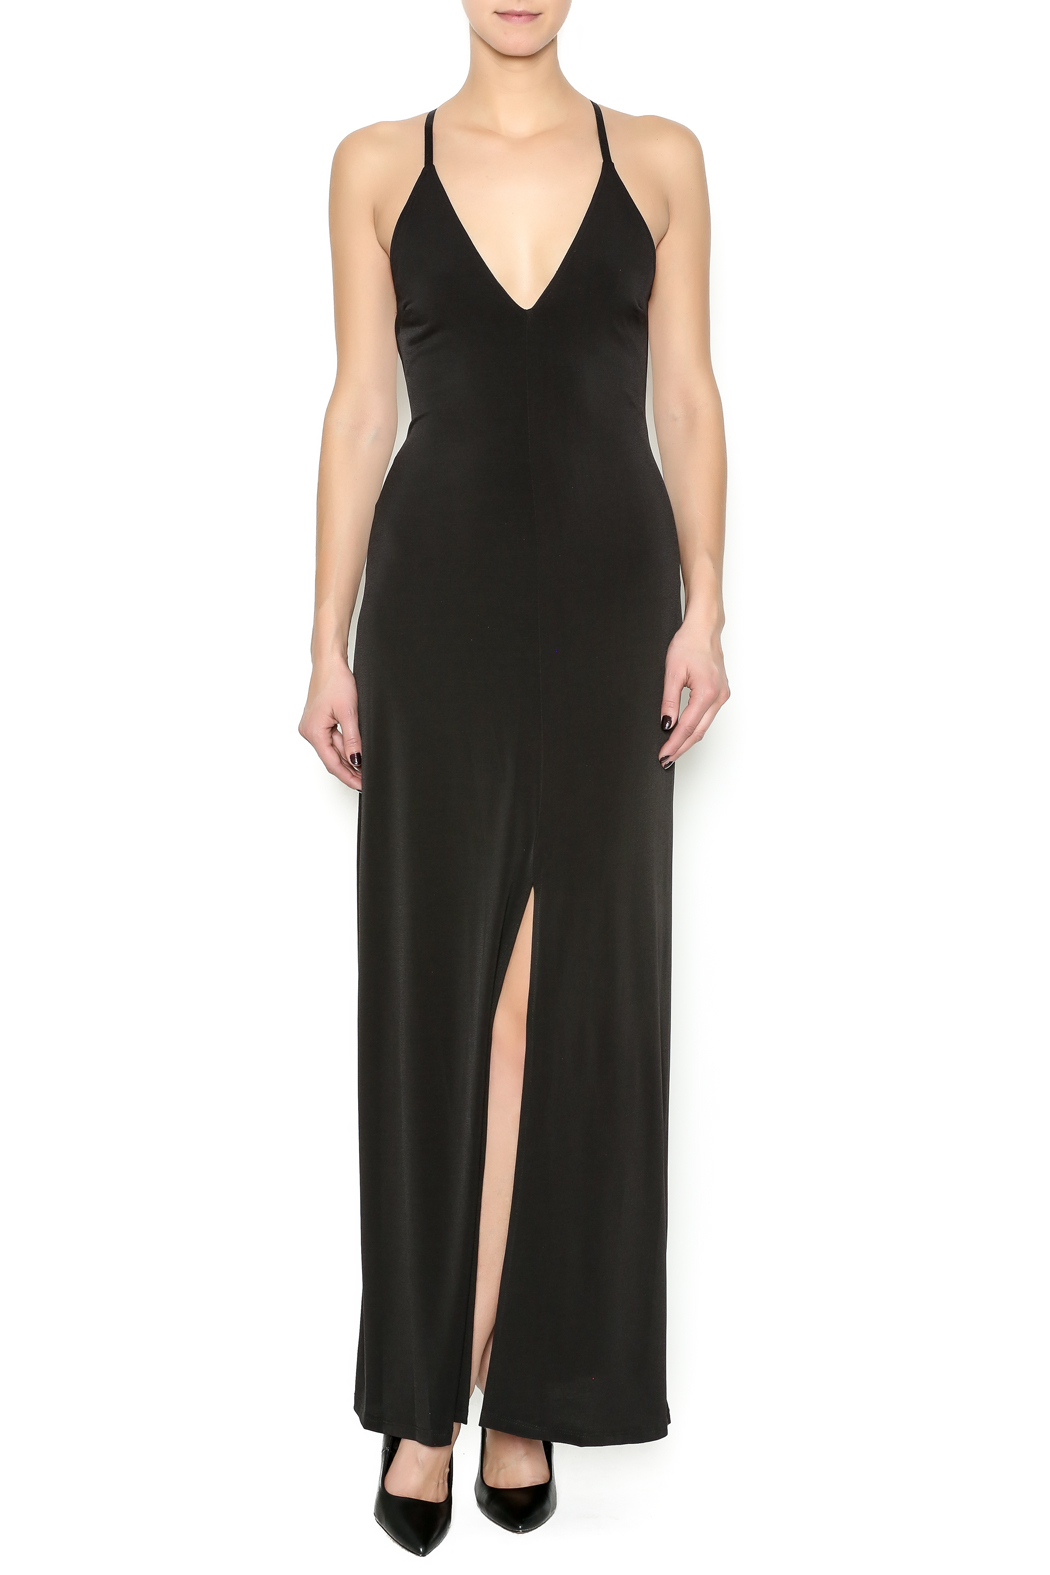 Stilletto's Black Maxi Dress - Front Cropped Image